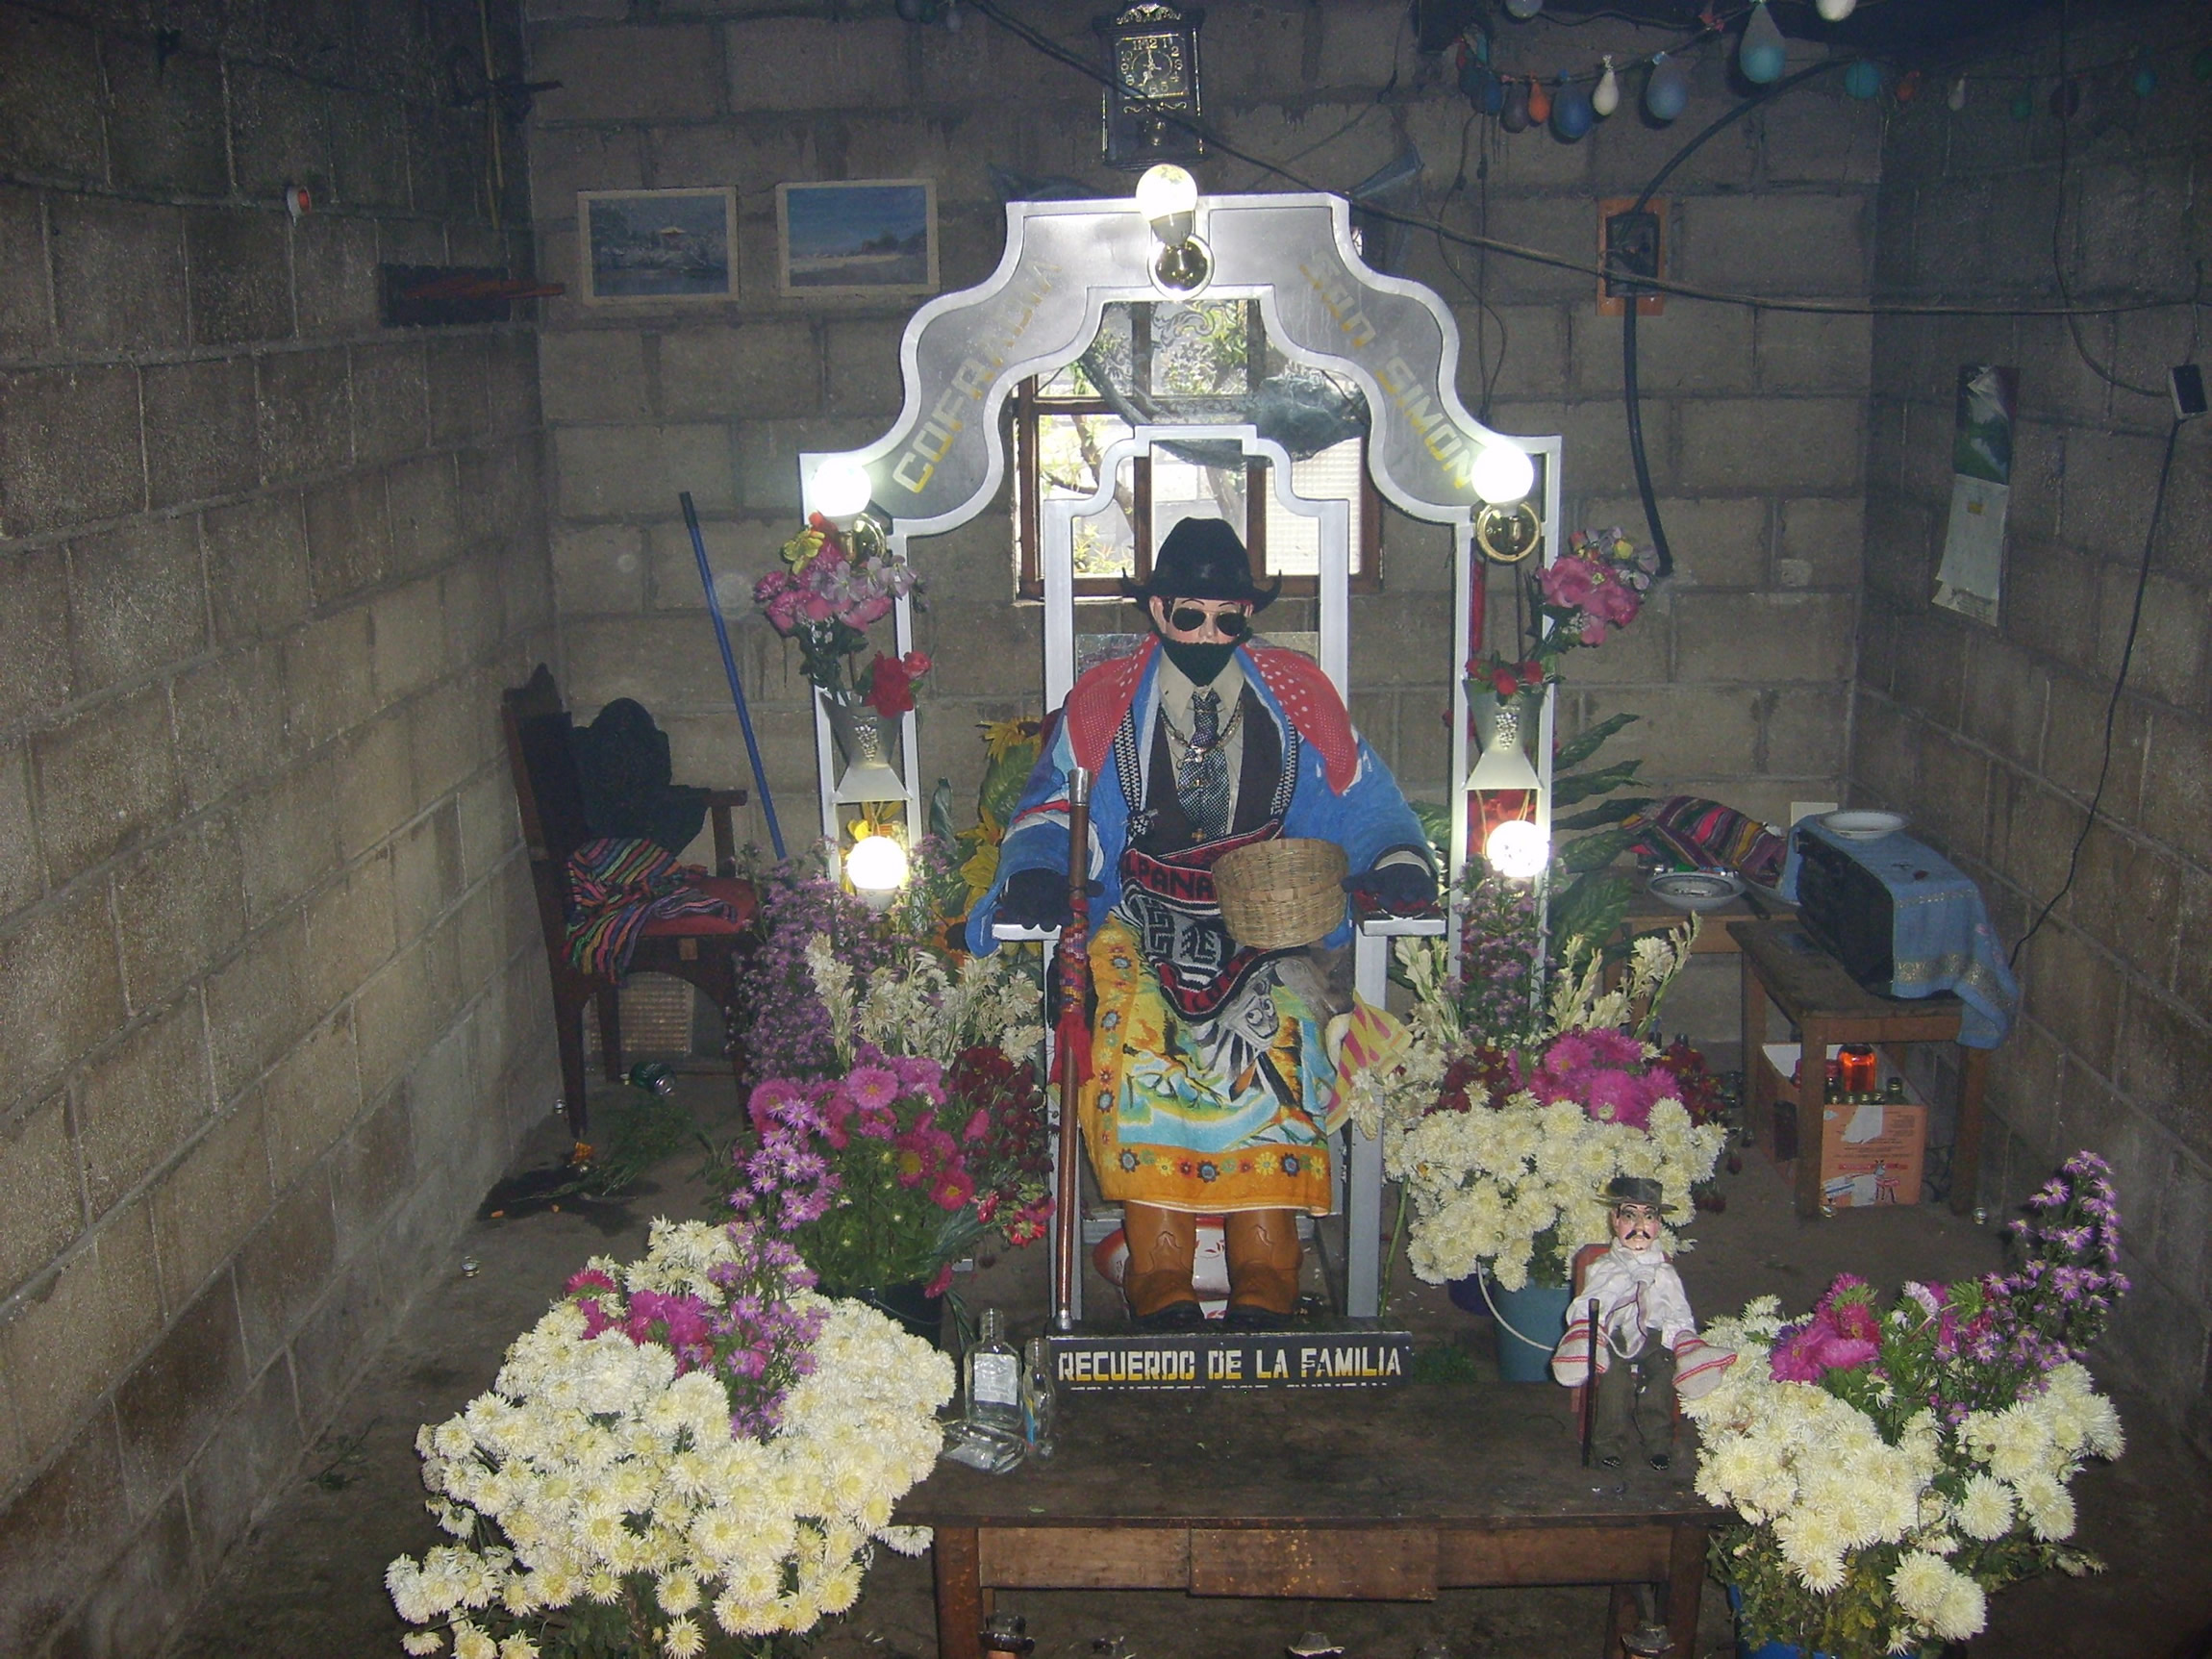 Image 11. A lifesize doll of San Simón (Maximón), a Mayan god turned Christian saint [not recognized by the Catholic Church], a subject of veneration in Zunil [a hillside town], Guatemala. The shrine moves from one private house to another every year on November 1. People come to pray there and leave various offerings - usually alcohol and tobacco. The local family takes care of the doll and the shrine during the year, while charging a nominal fee (e.g. 5 GTQ) to visitors. Photo by Sapfan (Jan Petula).